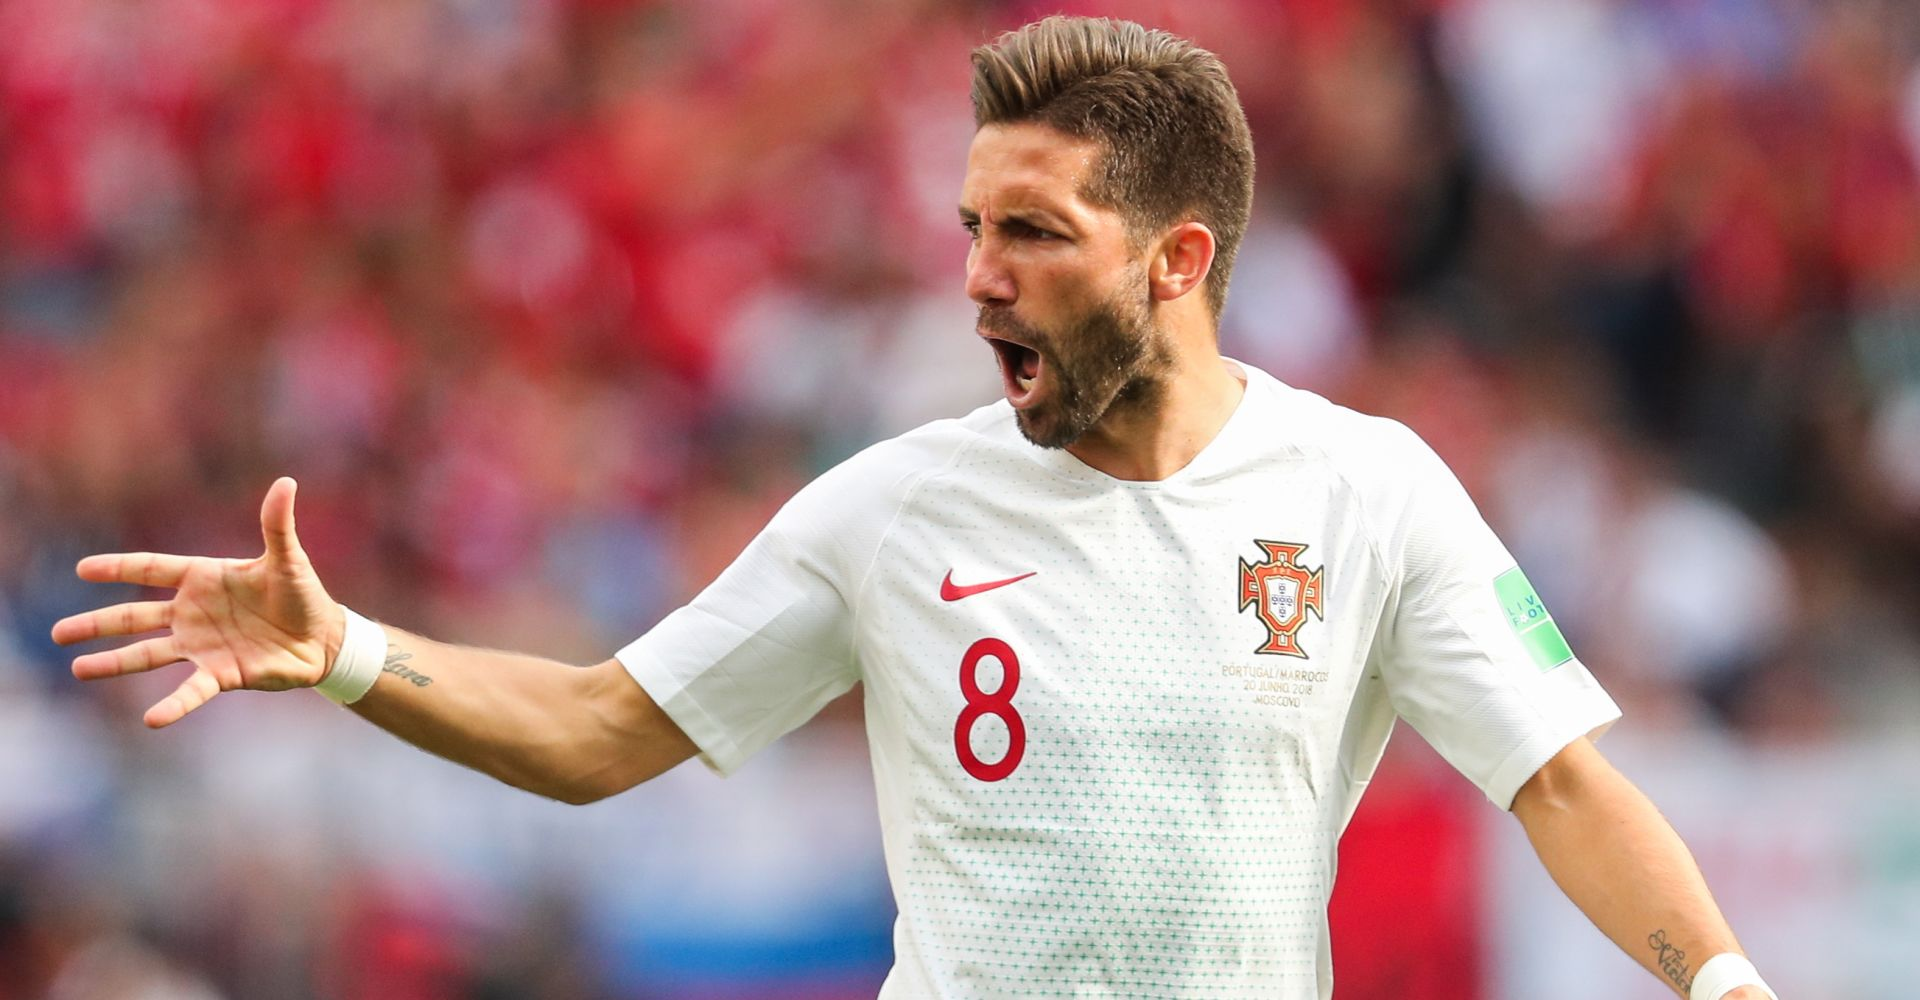 Uruguay vs Portugal odds: Joao Moutinho's return to the XI will be a boost for the Selecao